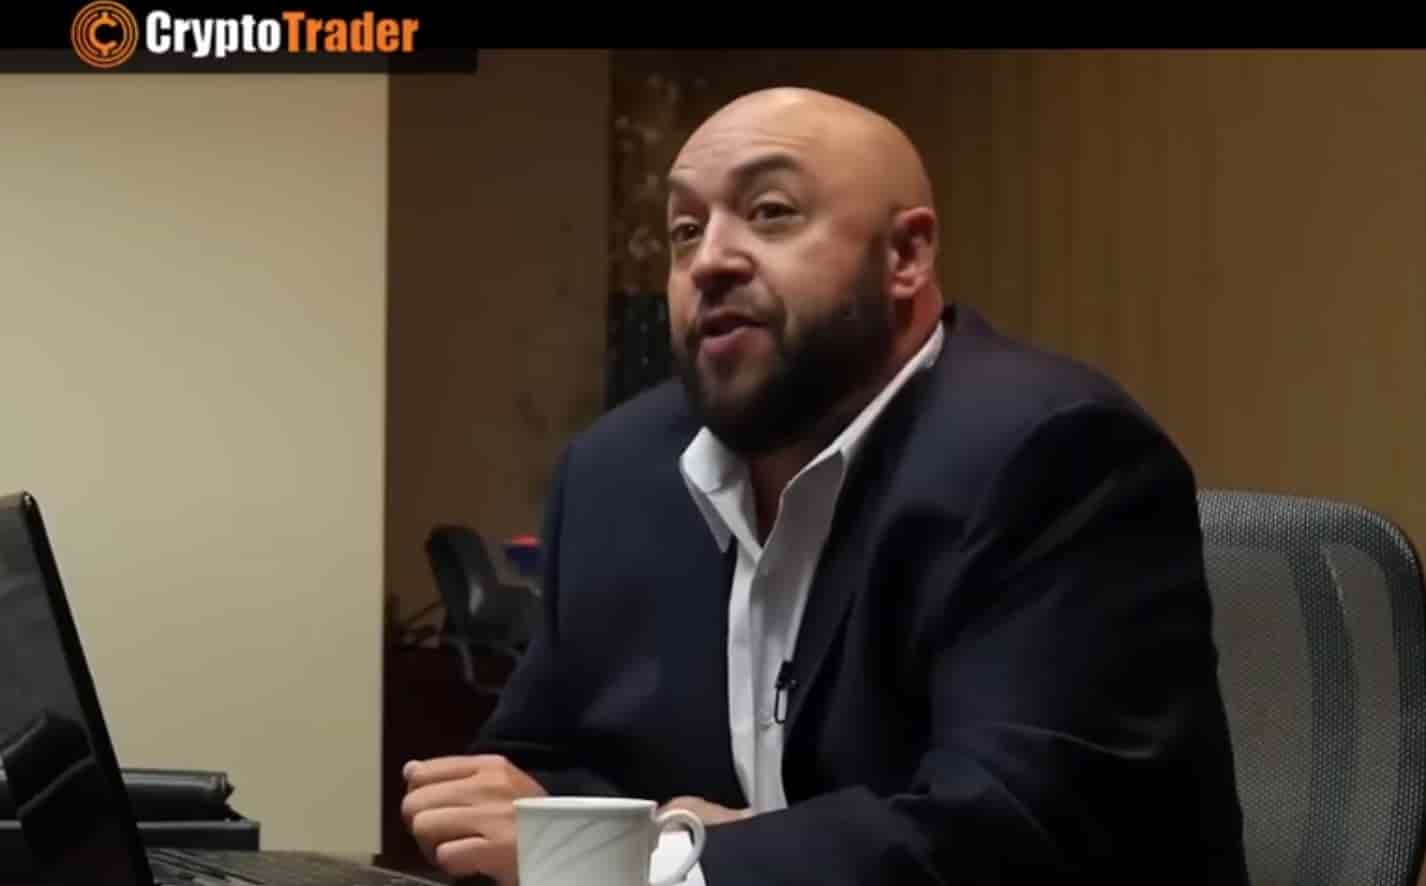 the CryptoTrader boss